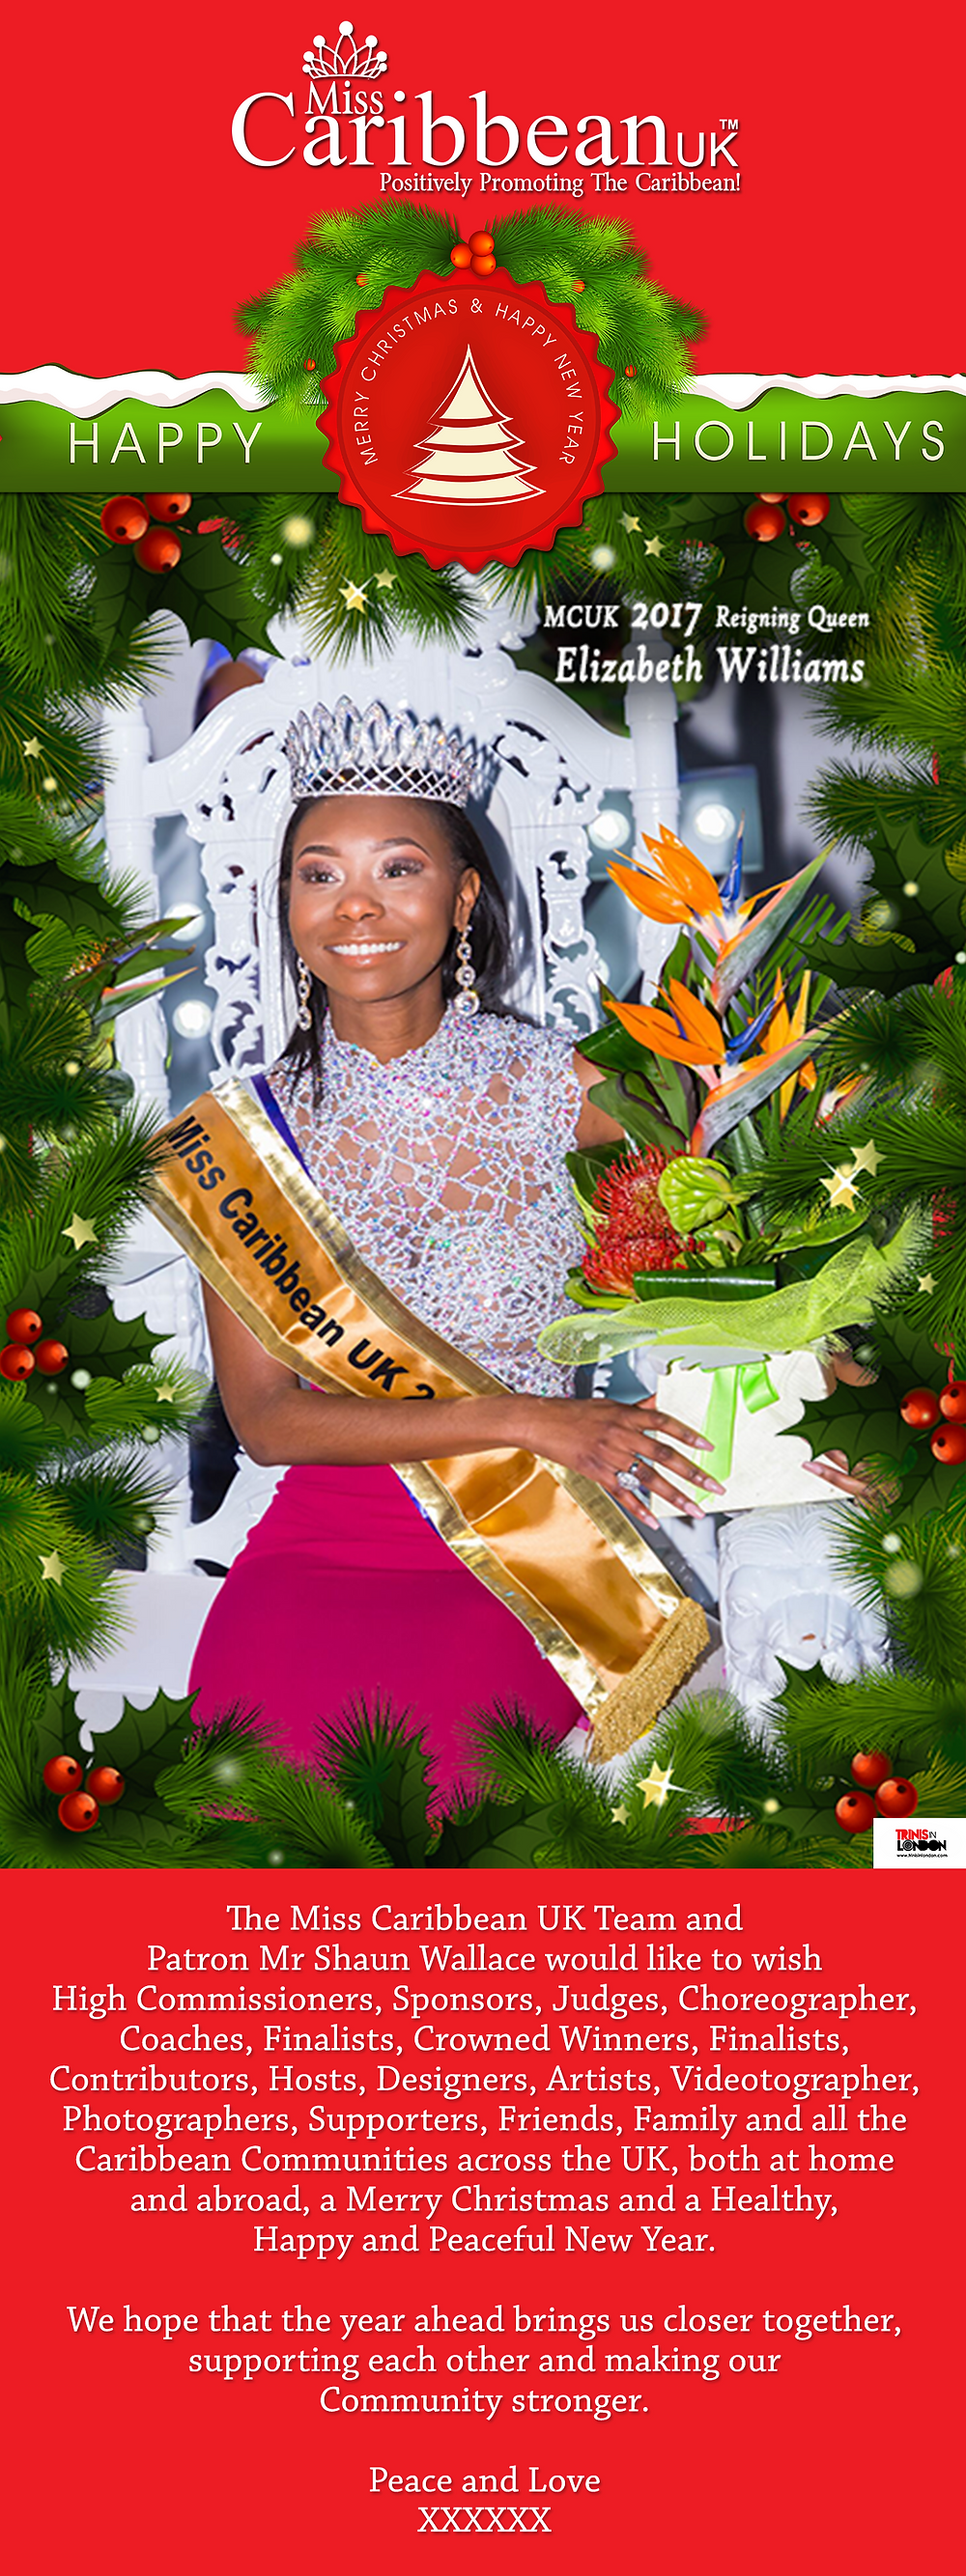 Miss Caribbean UK - Christmas Greetings